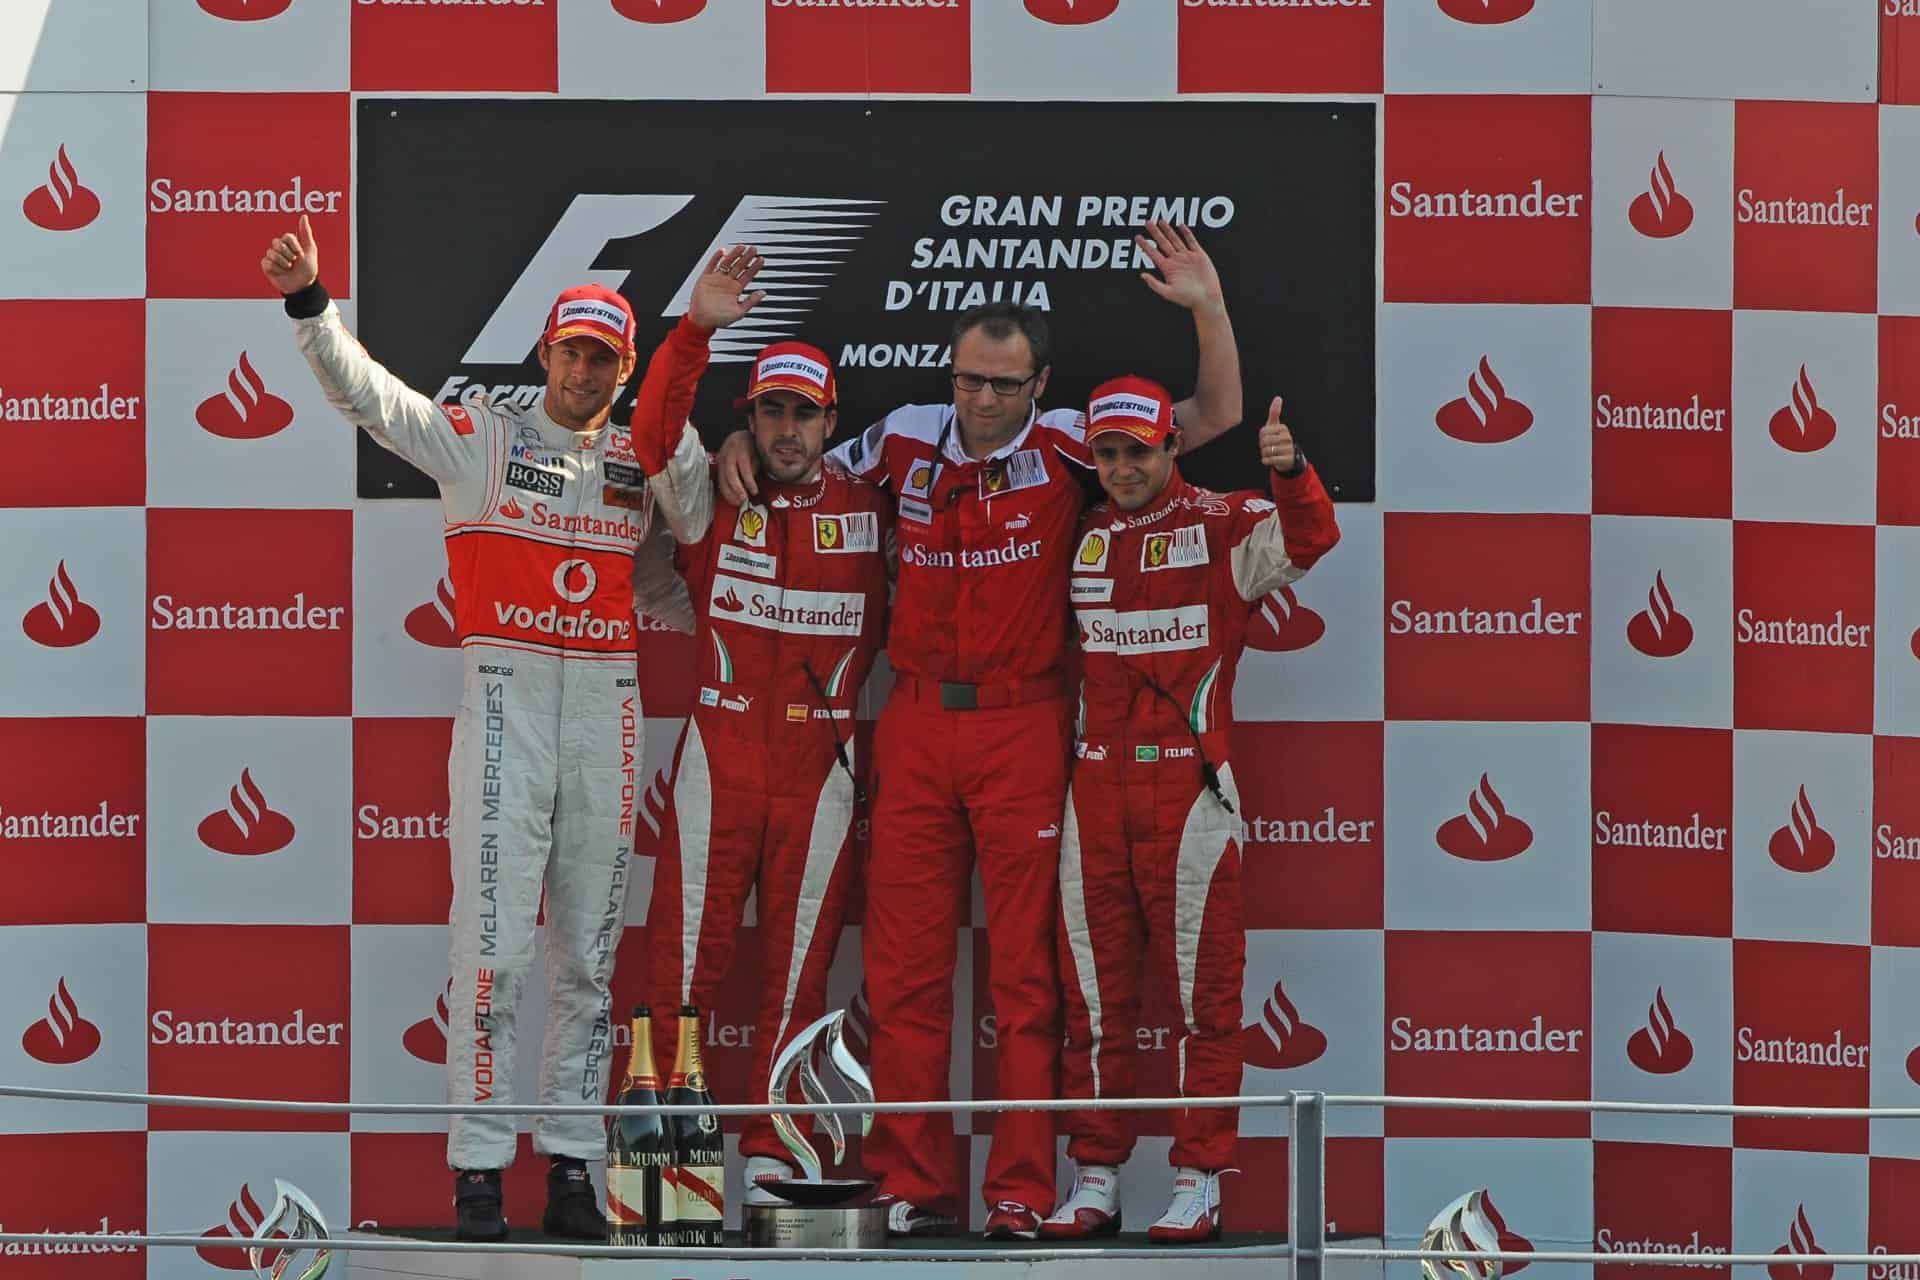 Monza 2010 Italian GP F1 2010 podium Photo Ferrari